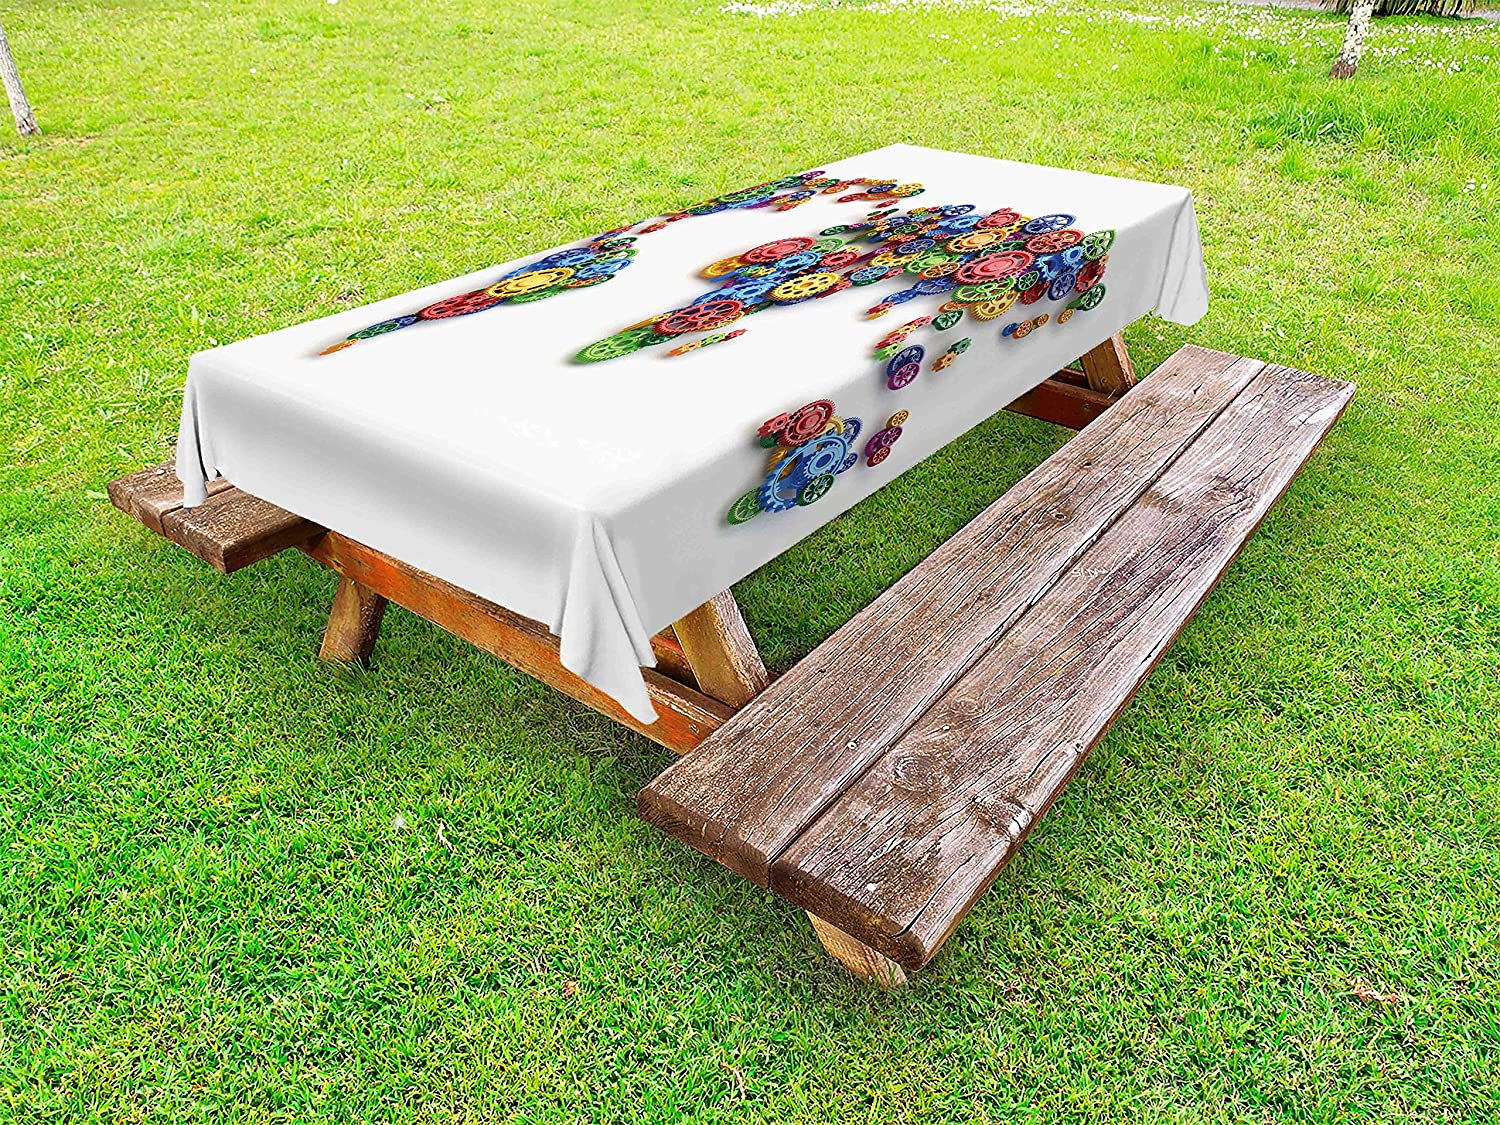 Multicolor pik/_12703/_58x104 Artwork with Musical Notes Rhythm Song Ornamental in Vibrant Colors Fantasy Theme Decorative Washable Picnic Table Cloth Ambesonne Music Outdoor Tablecloth 58 X 104 inches